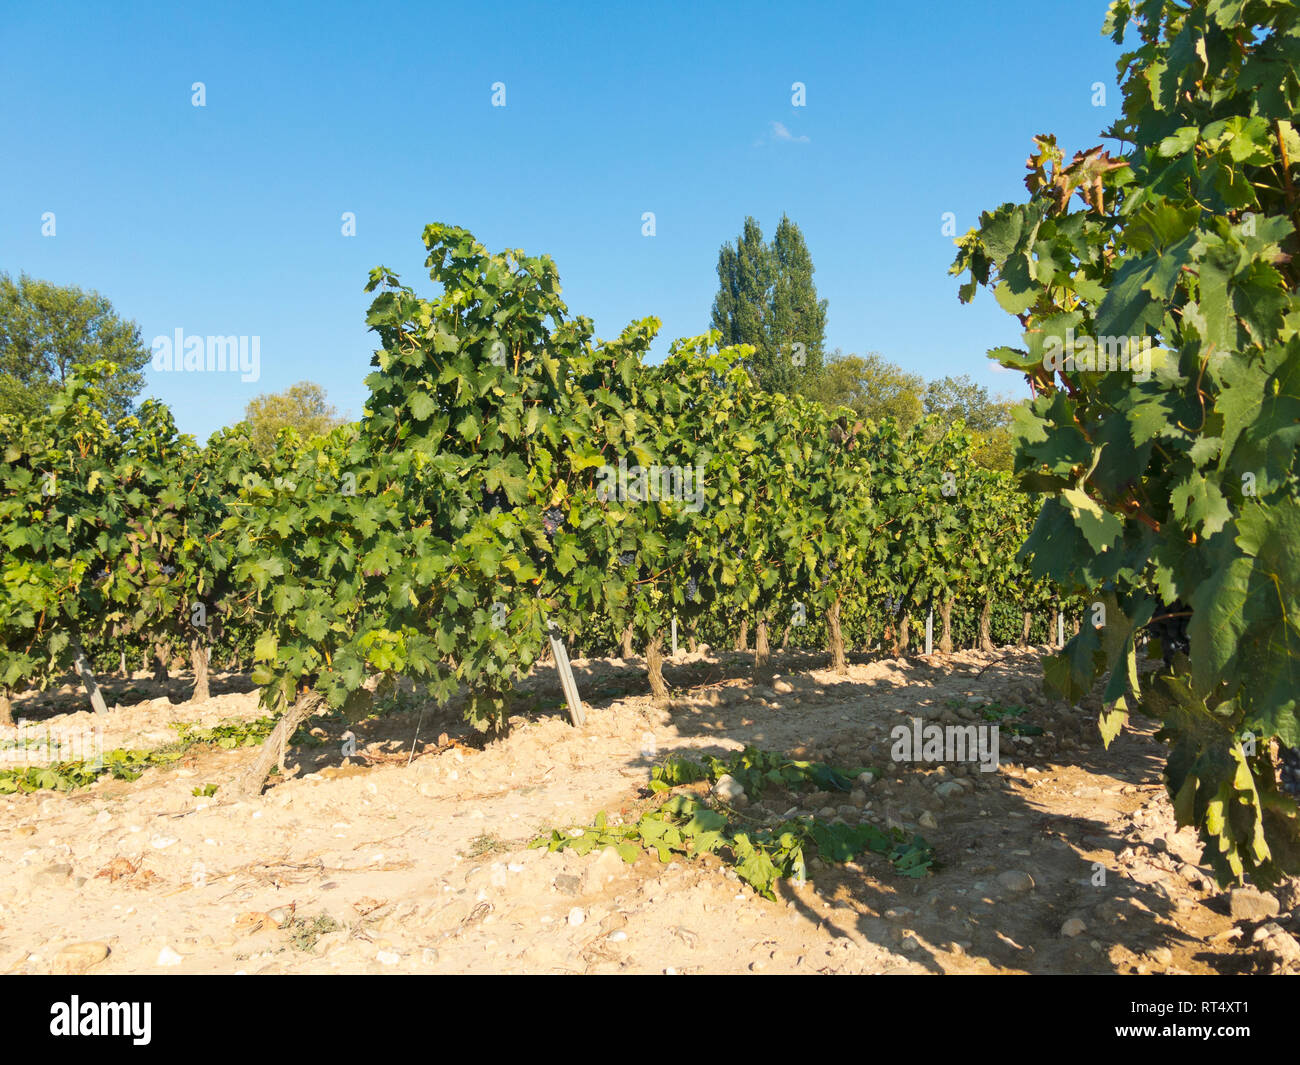 Field with vineyards in Logroño, in the Spanish region of La Rioja, famous for its production of red wine. La Rioja is the region with the highest win Stock Photo